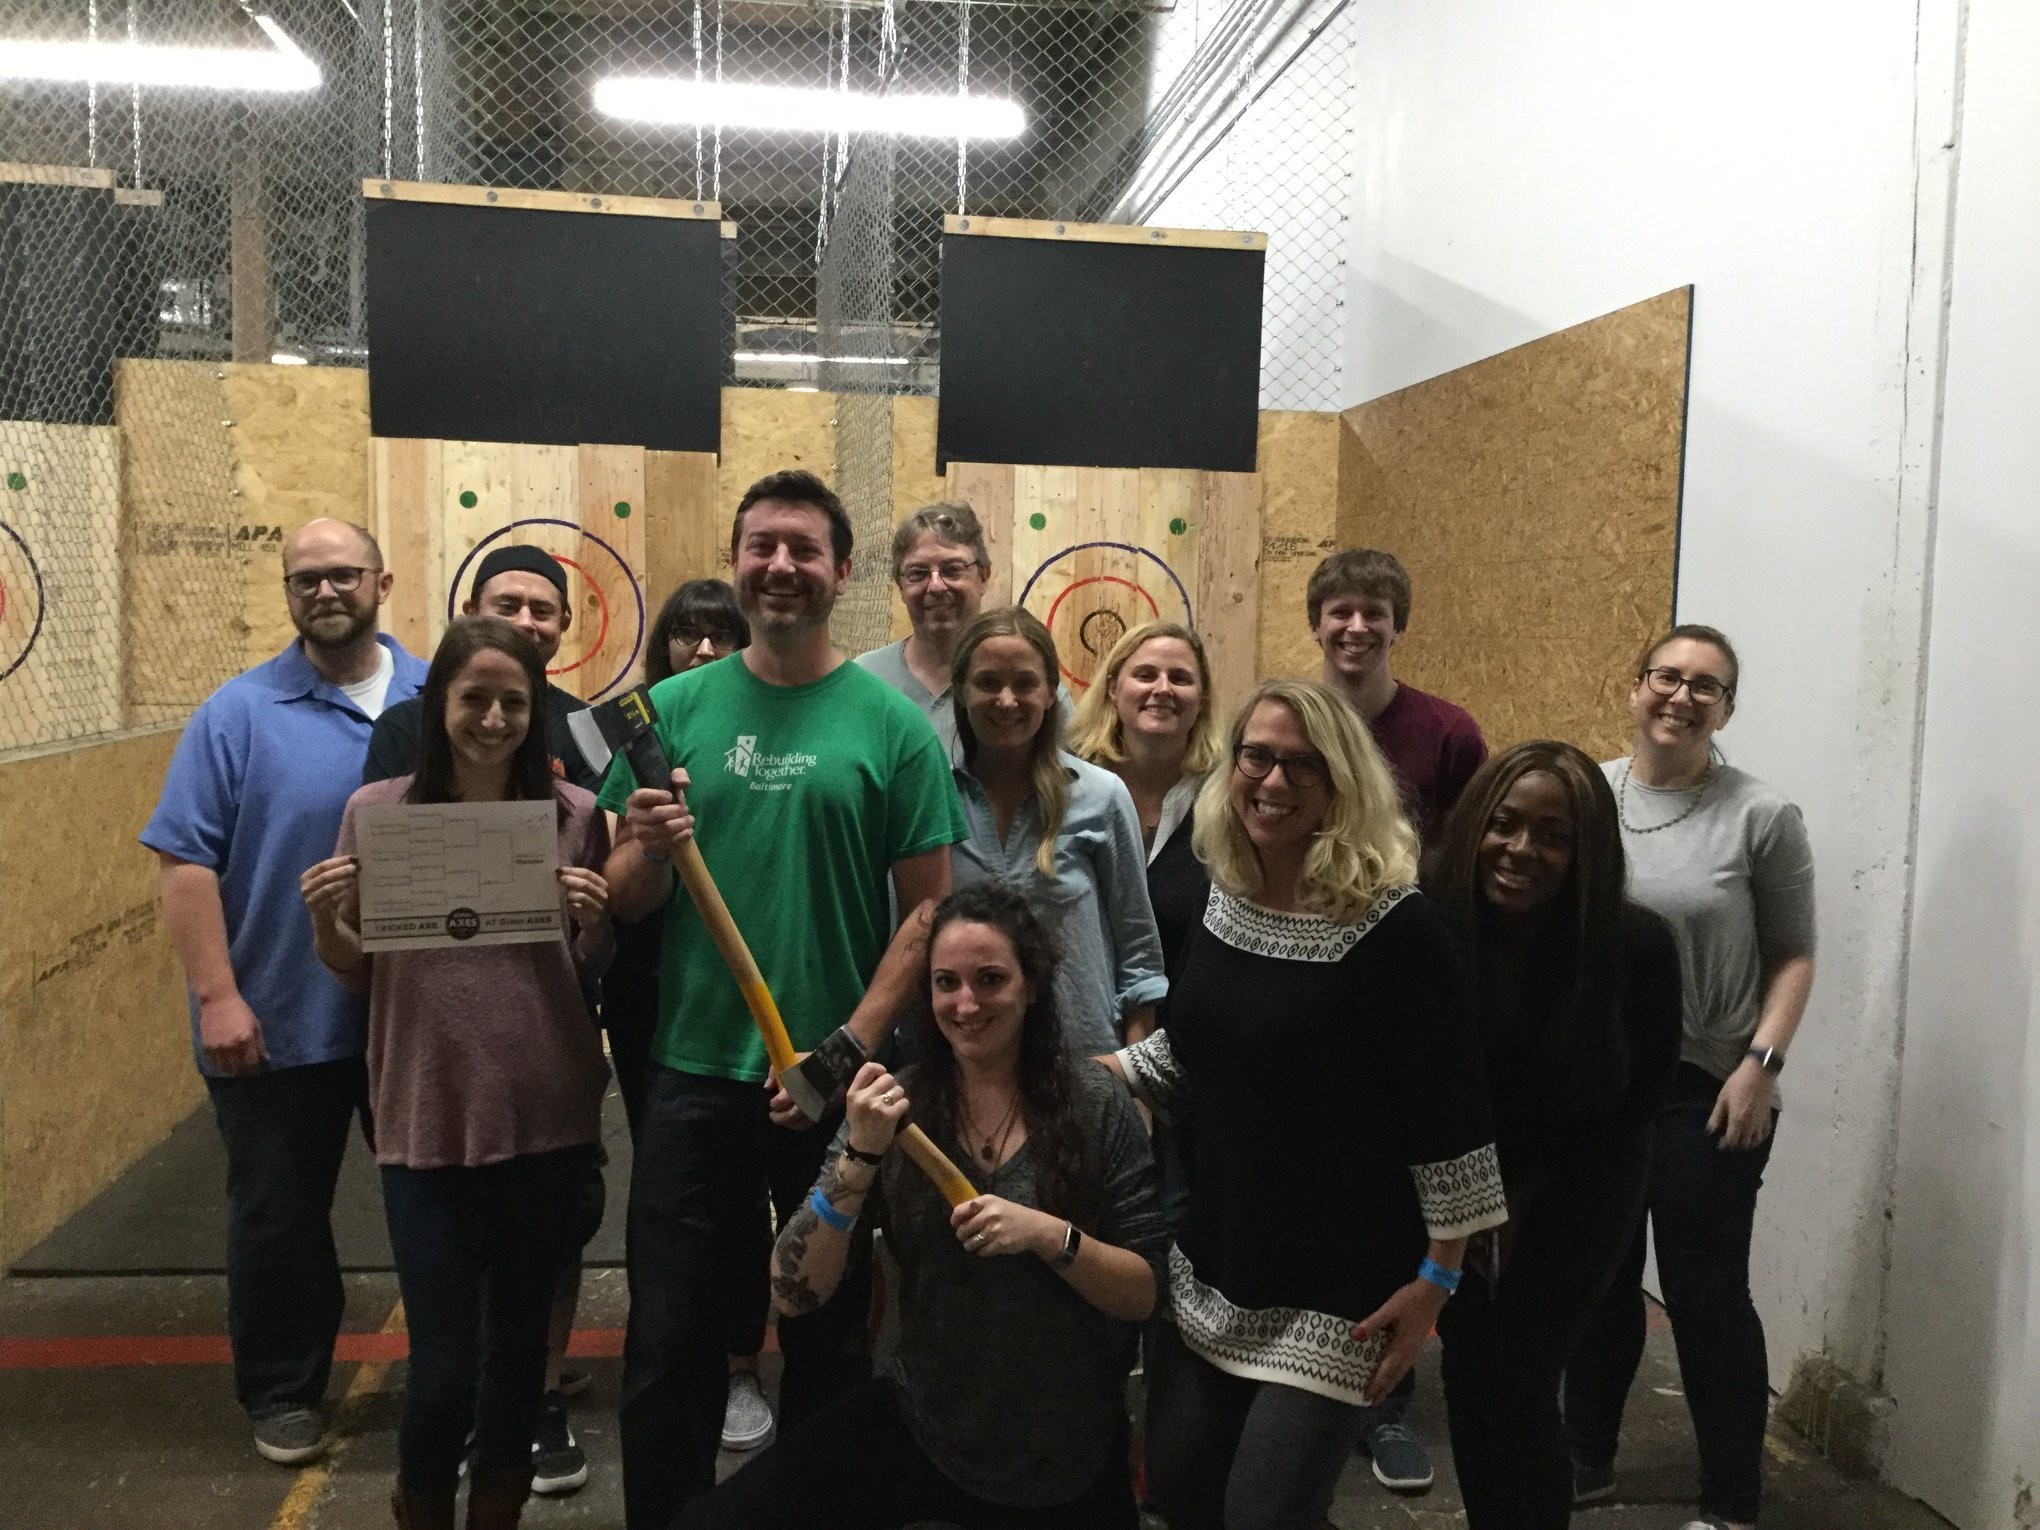 Office Party and Axe Throwing